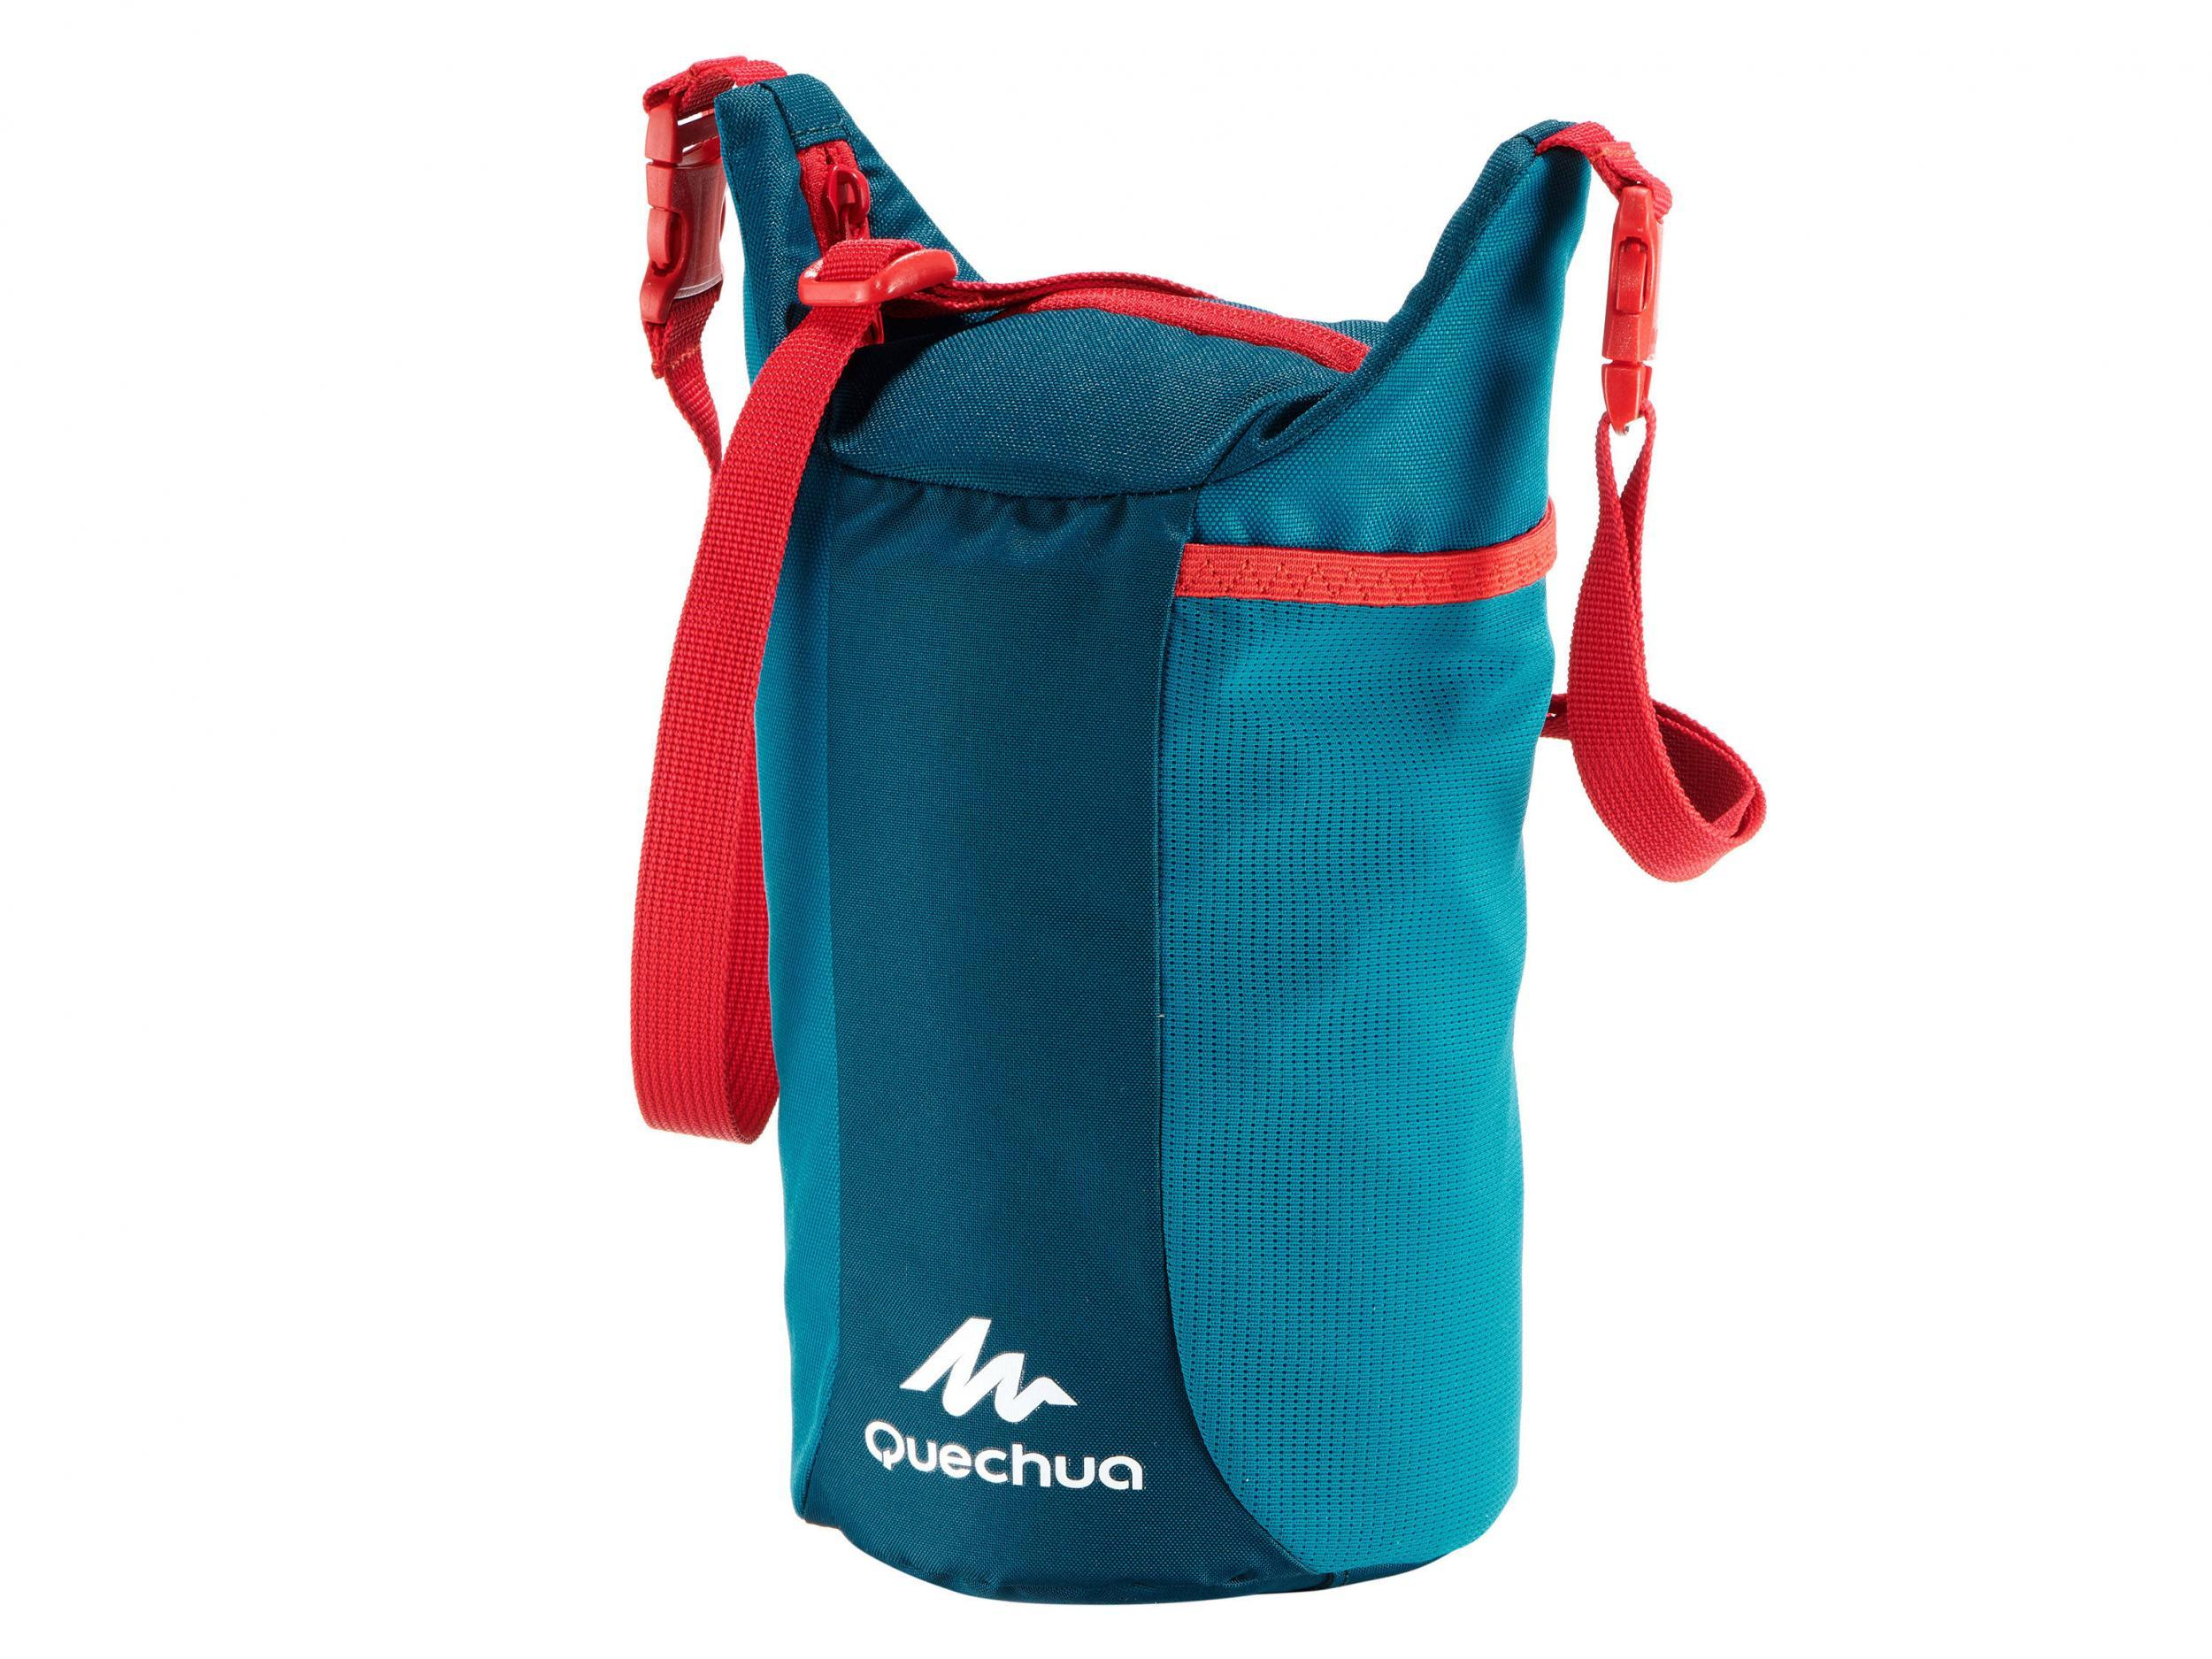 This lunch bag from Decathlon s outdoors brand Quechua is actually designed  for hiking but we thought it was a good kids  packed lunch option,  especially if ... 6a61169ce2